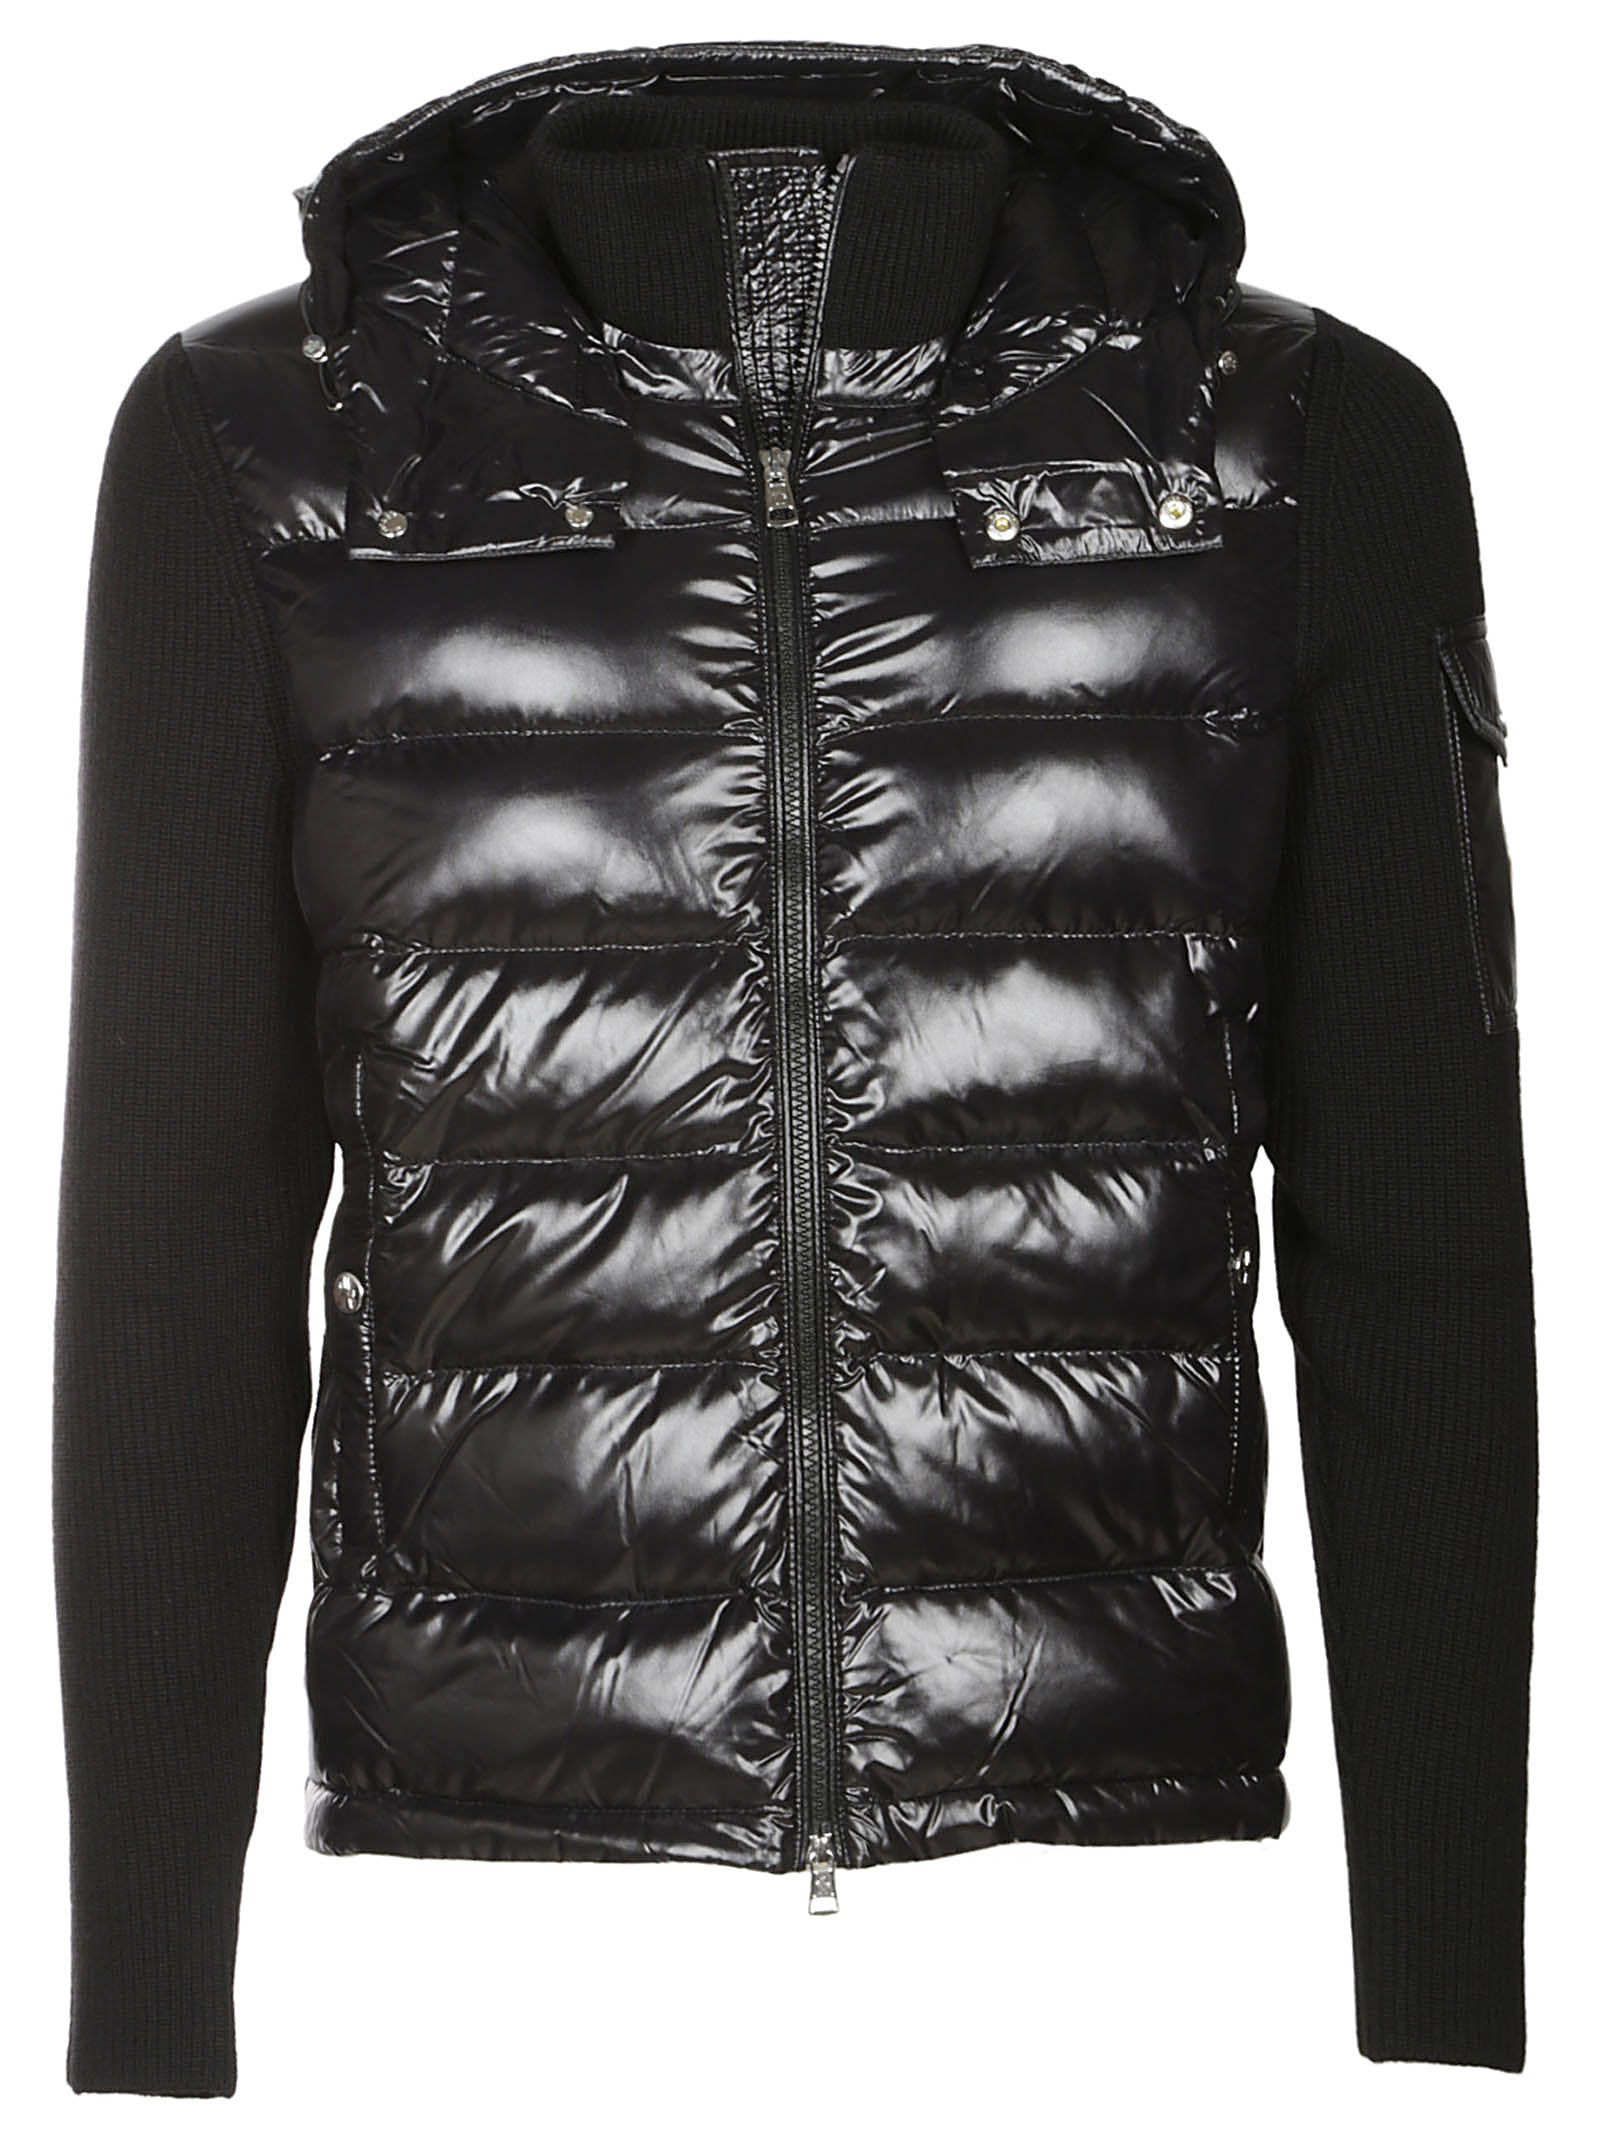 88d2759d673 Moncler Zipped Padded Jacket - Black ...